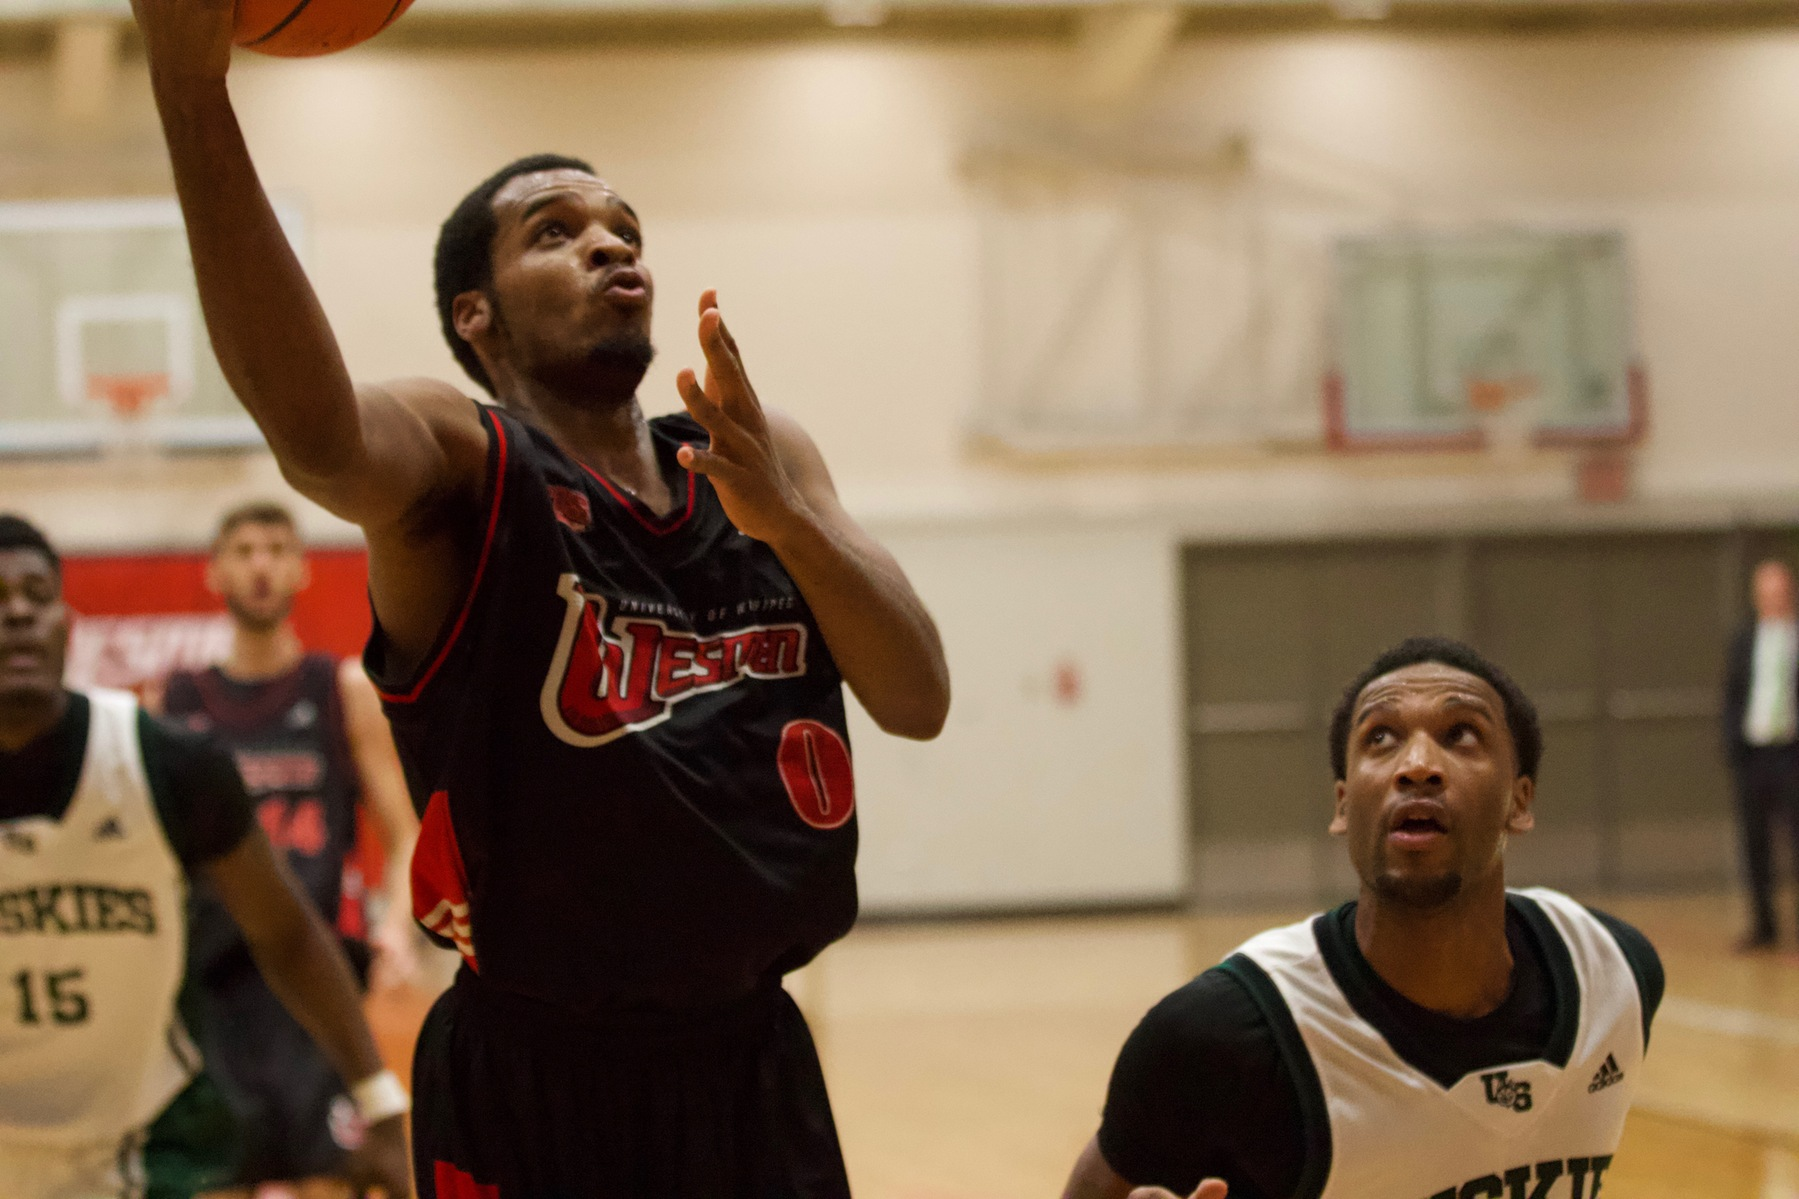 Sean Tarver had 20 points to lead the Wesmen to a win over the Trinity Western Spartans on Saturday in Langley, B.C. (David Larkins/Wesmen Athletics file)